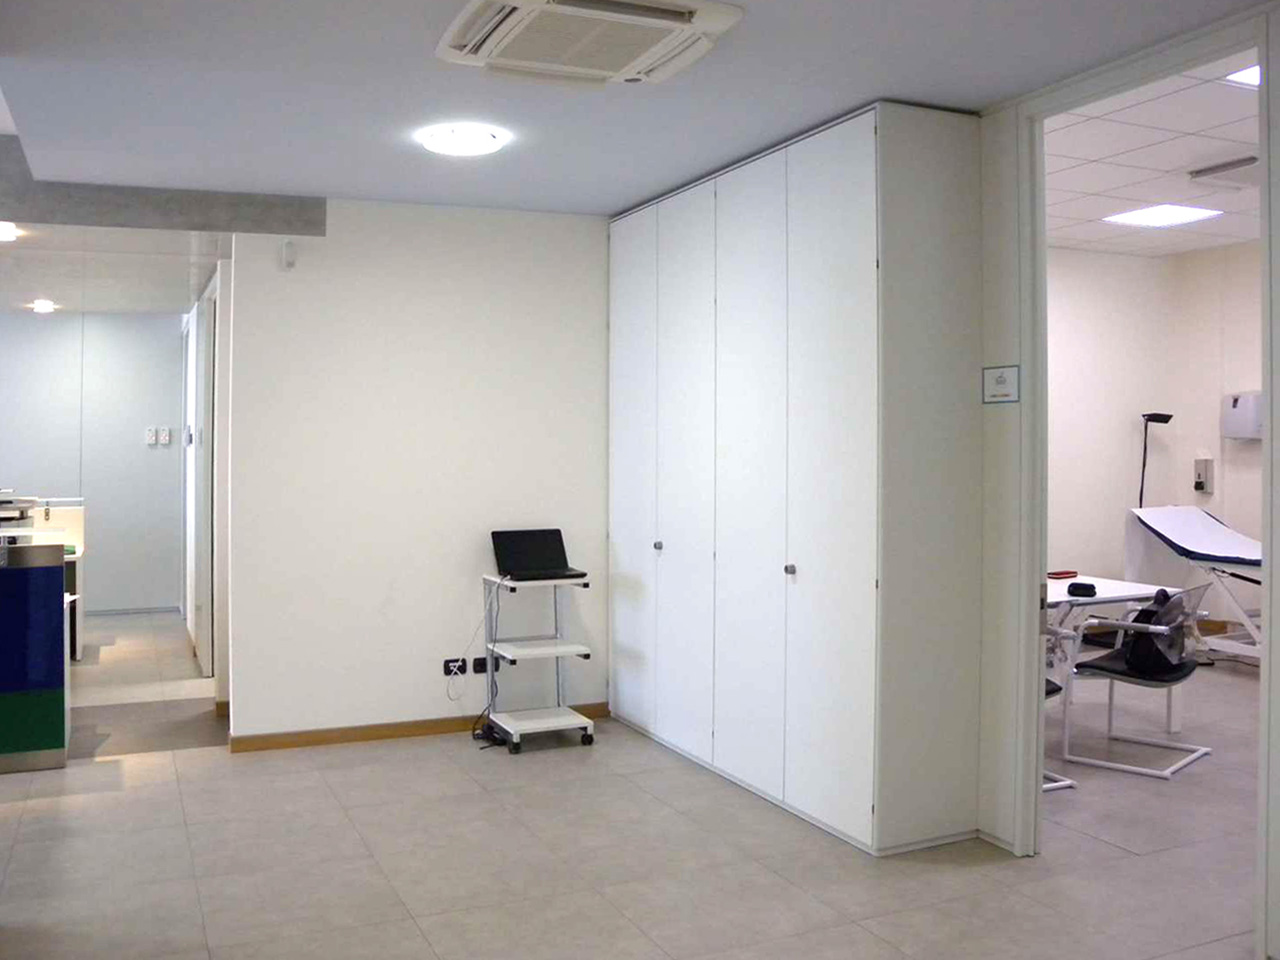 Development of outpatient clinic areas - Verona Italy 03